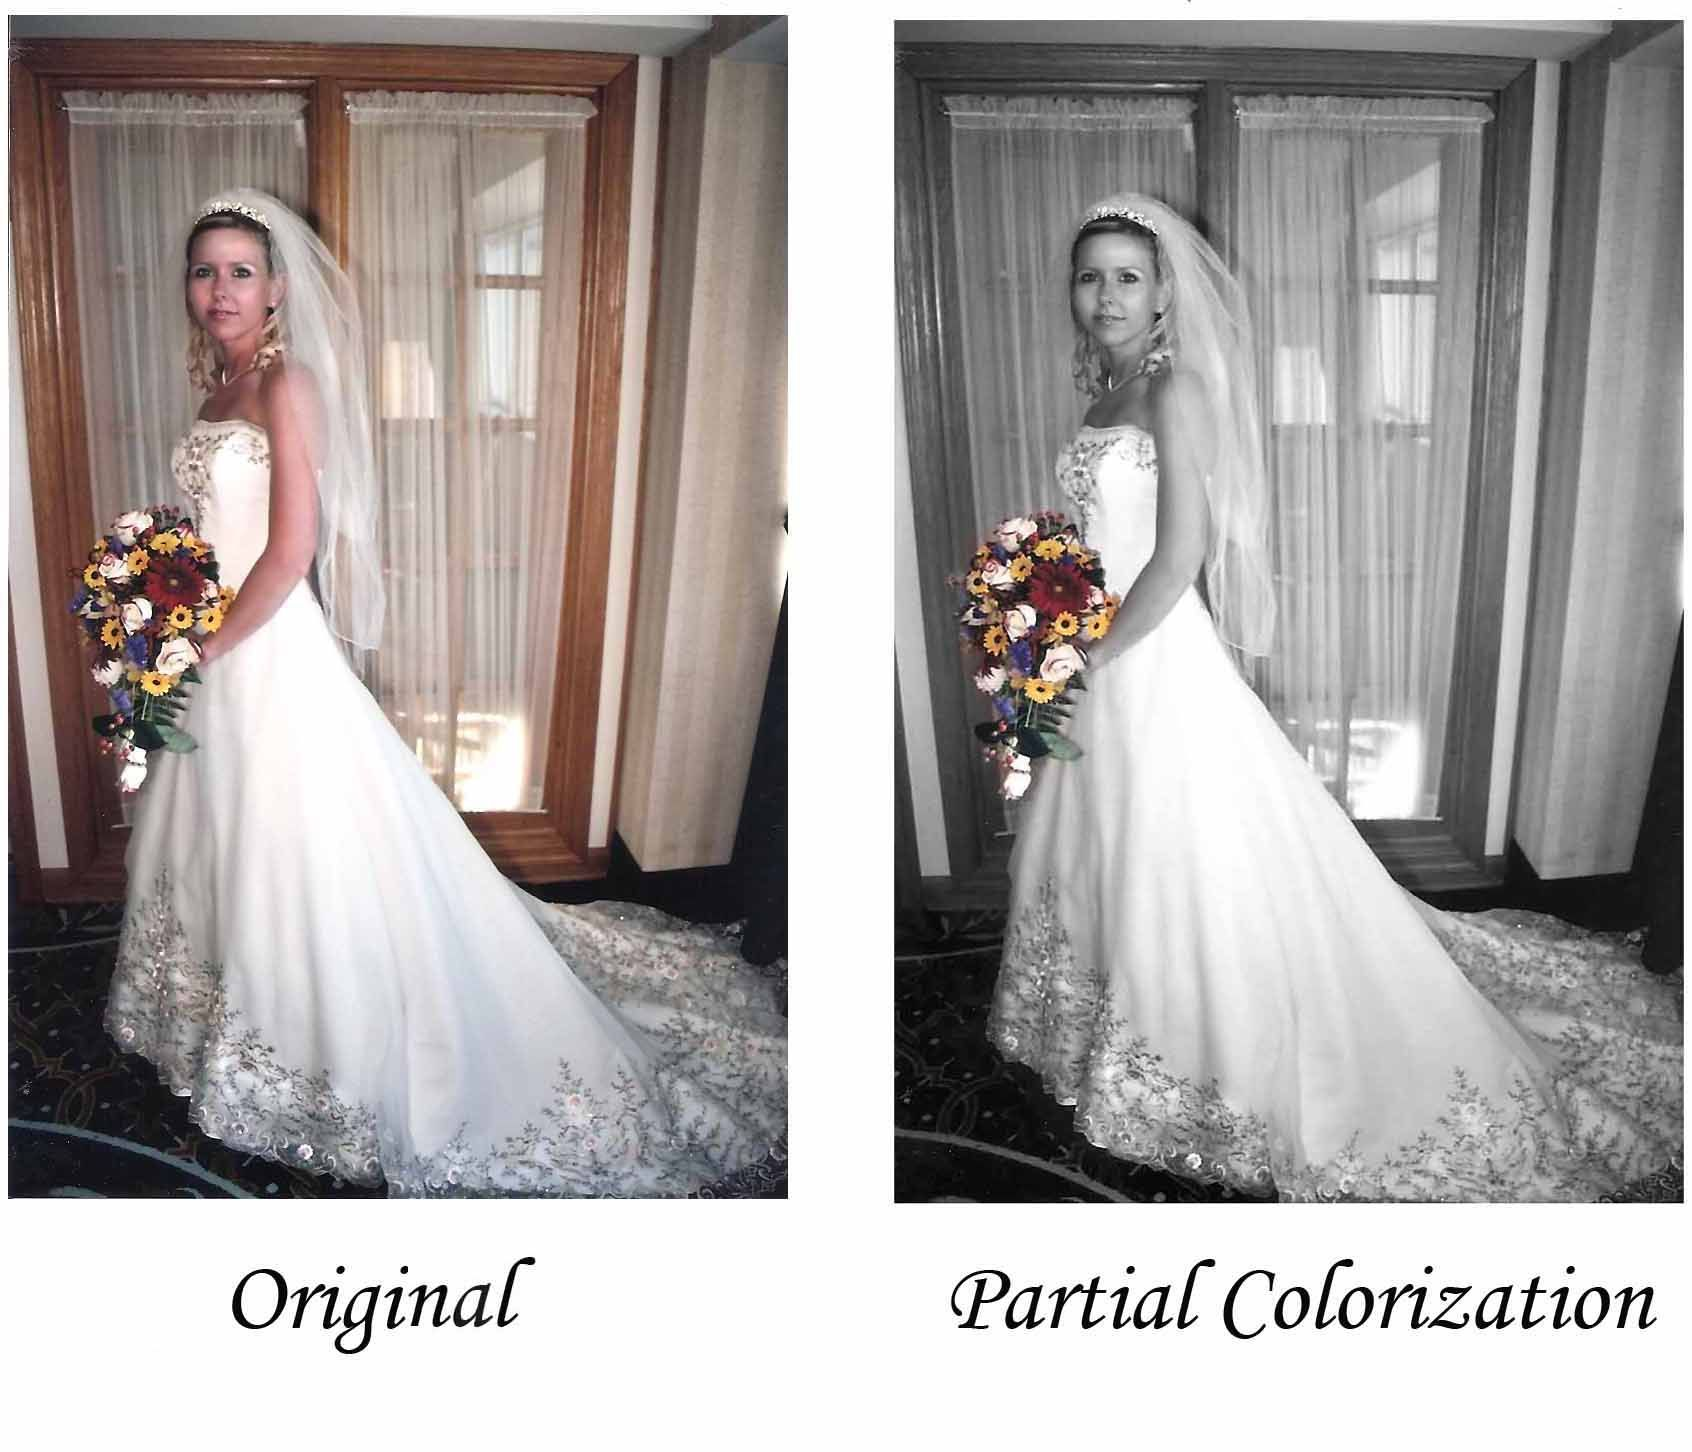 Wedding dress restoration  Partial Colorization  Blue Phoenix Photo Restorations  Pinterest